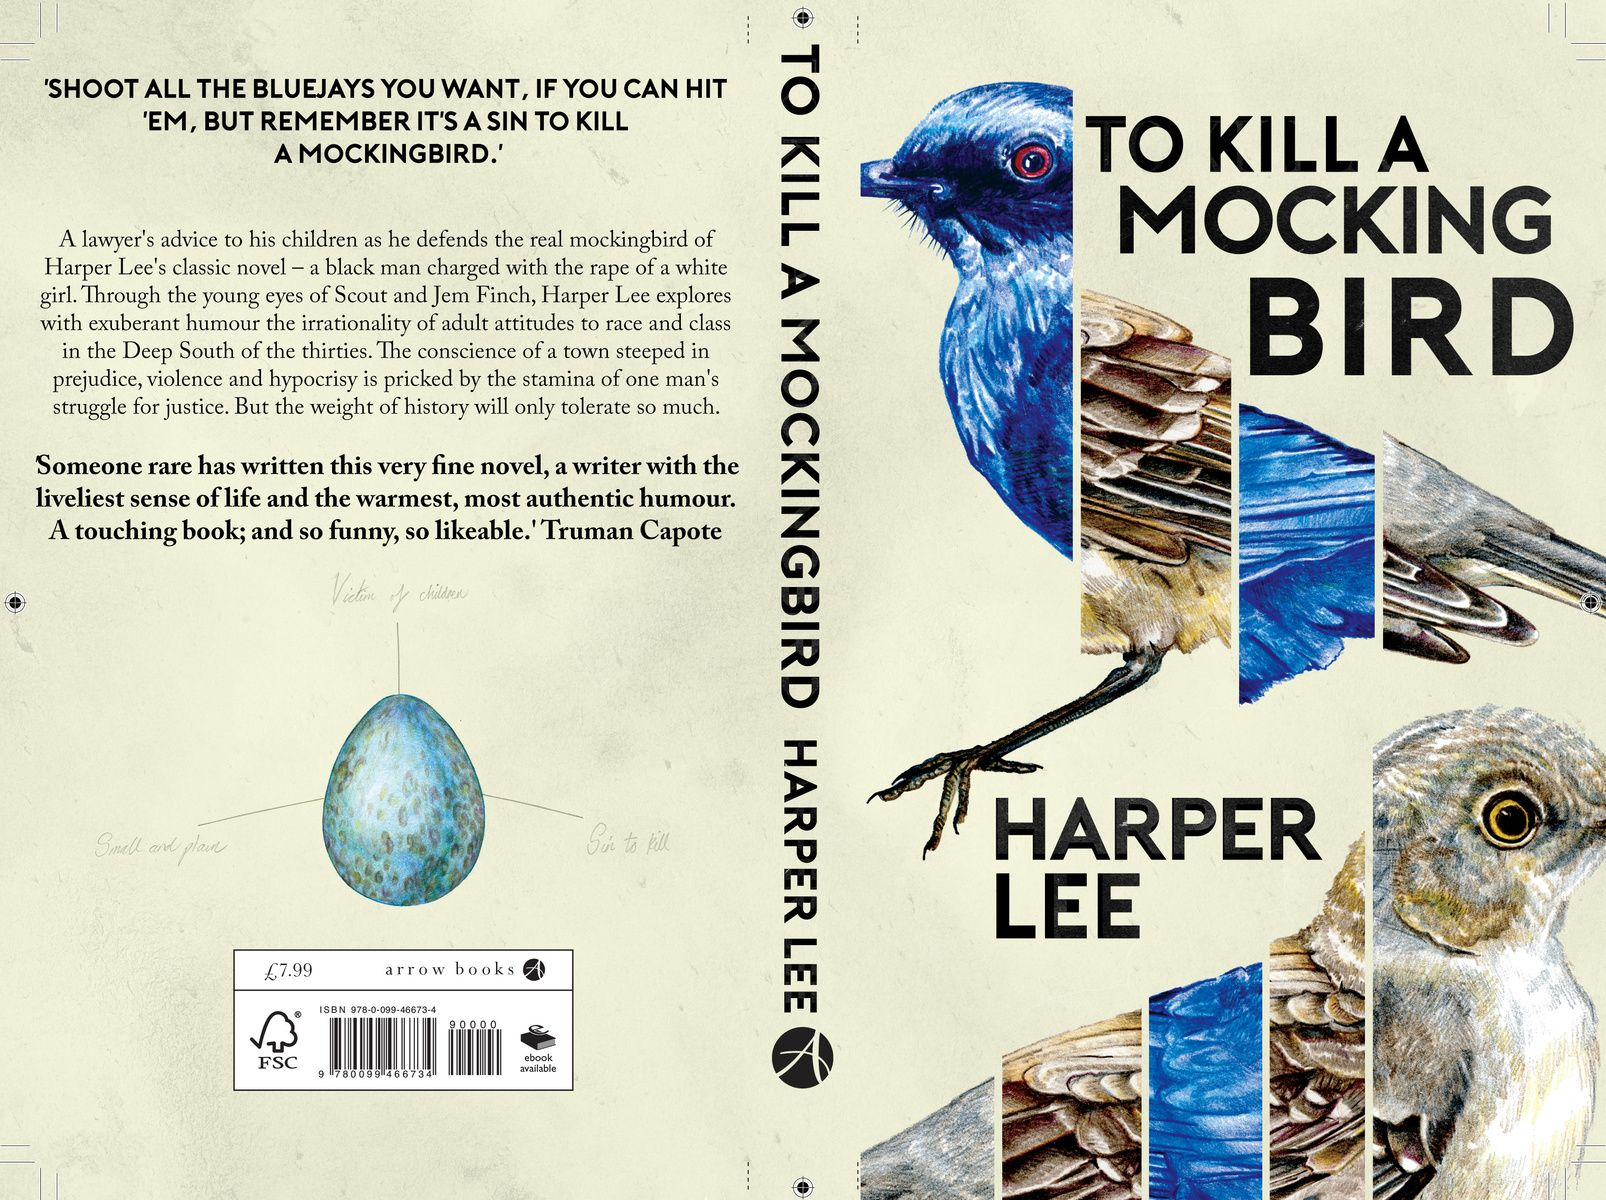 Penguin Book Cover Competition ~ Penguin book cover competition to kill a mockingbird